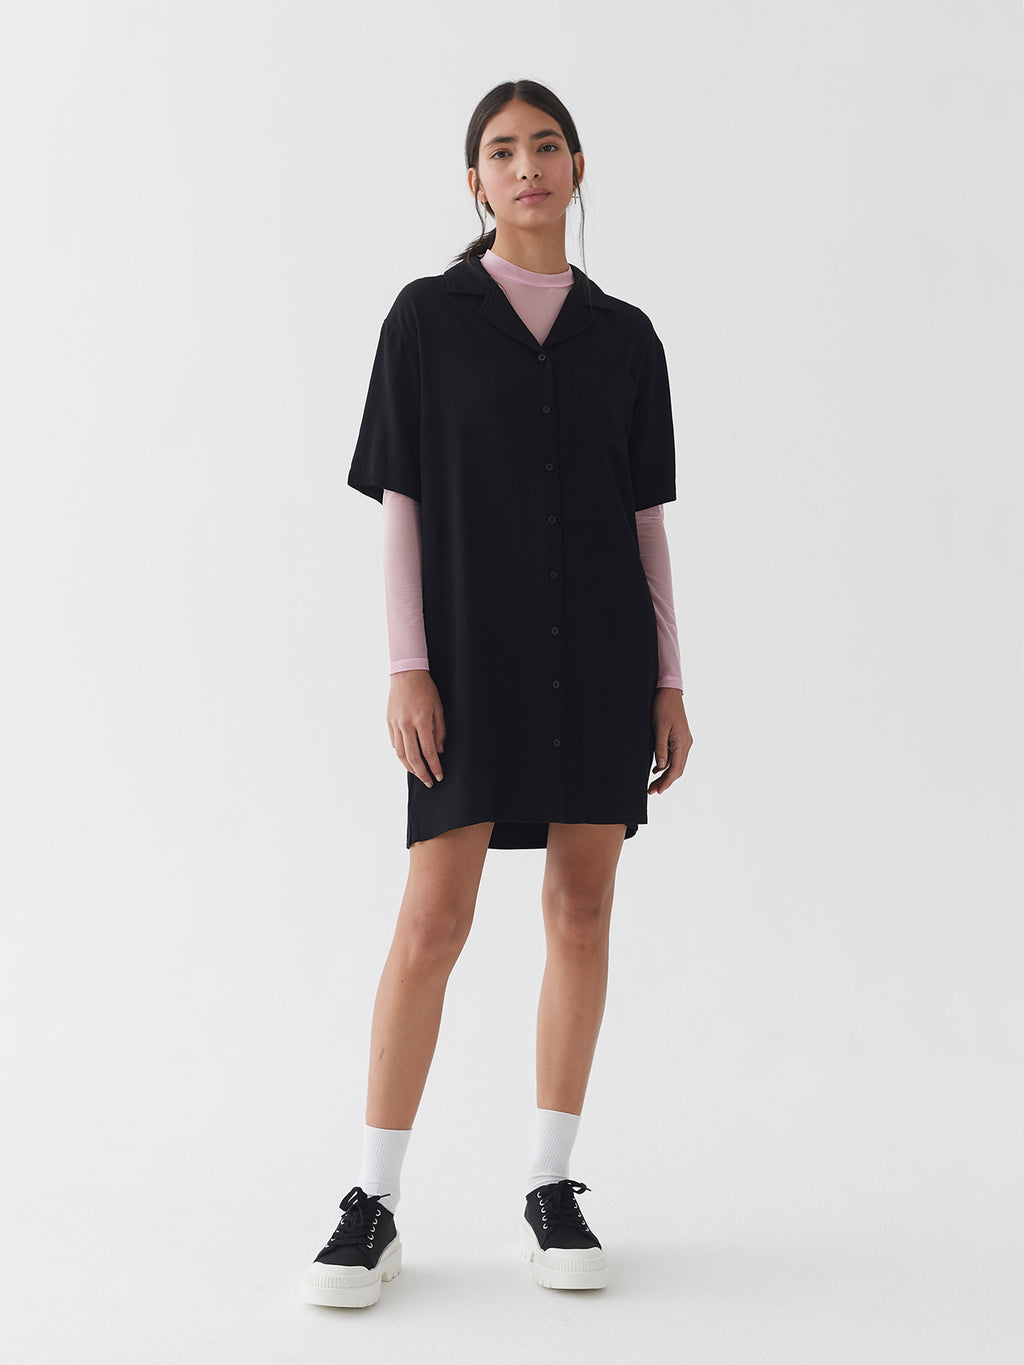 LO Bowling Shirt Dress